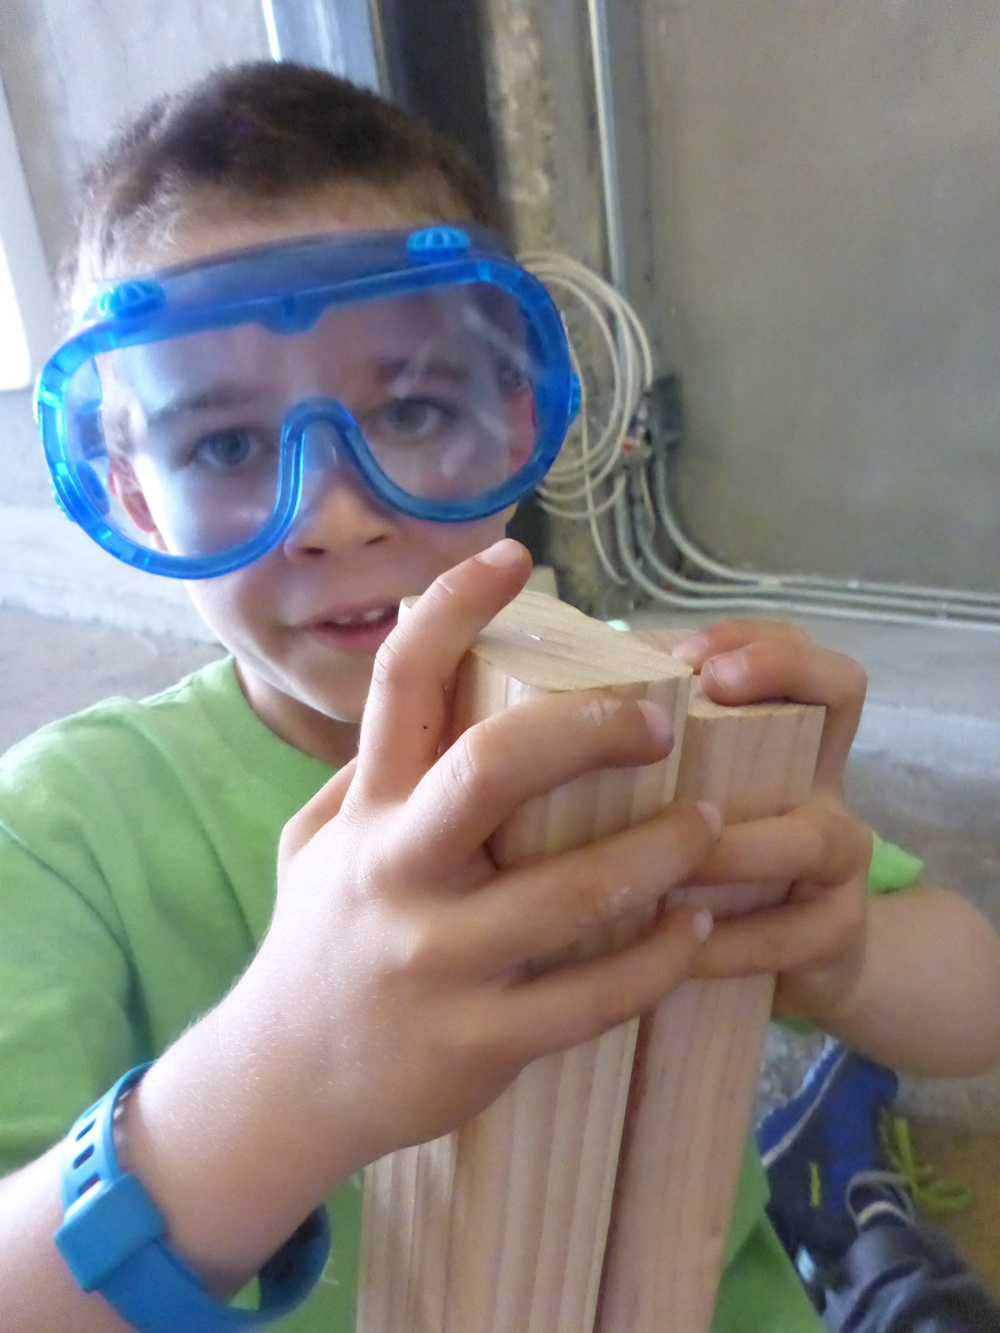 Max shows how two pieces of wood selected to be even don't appear to be flush.